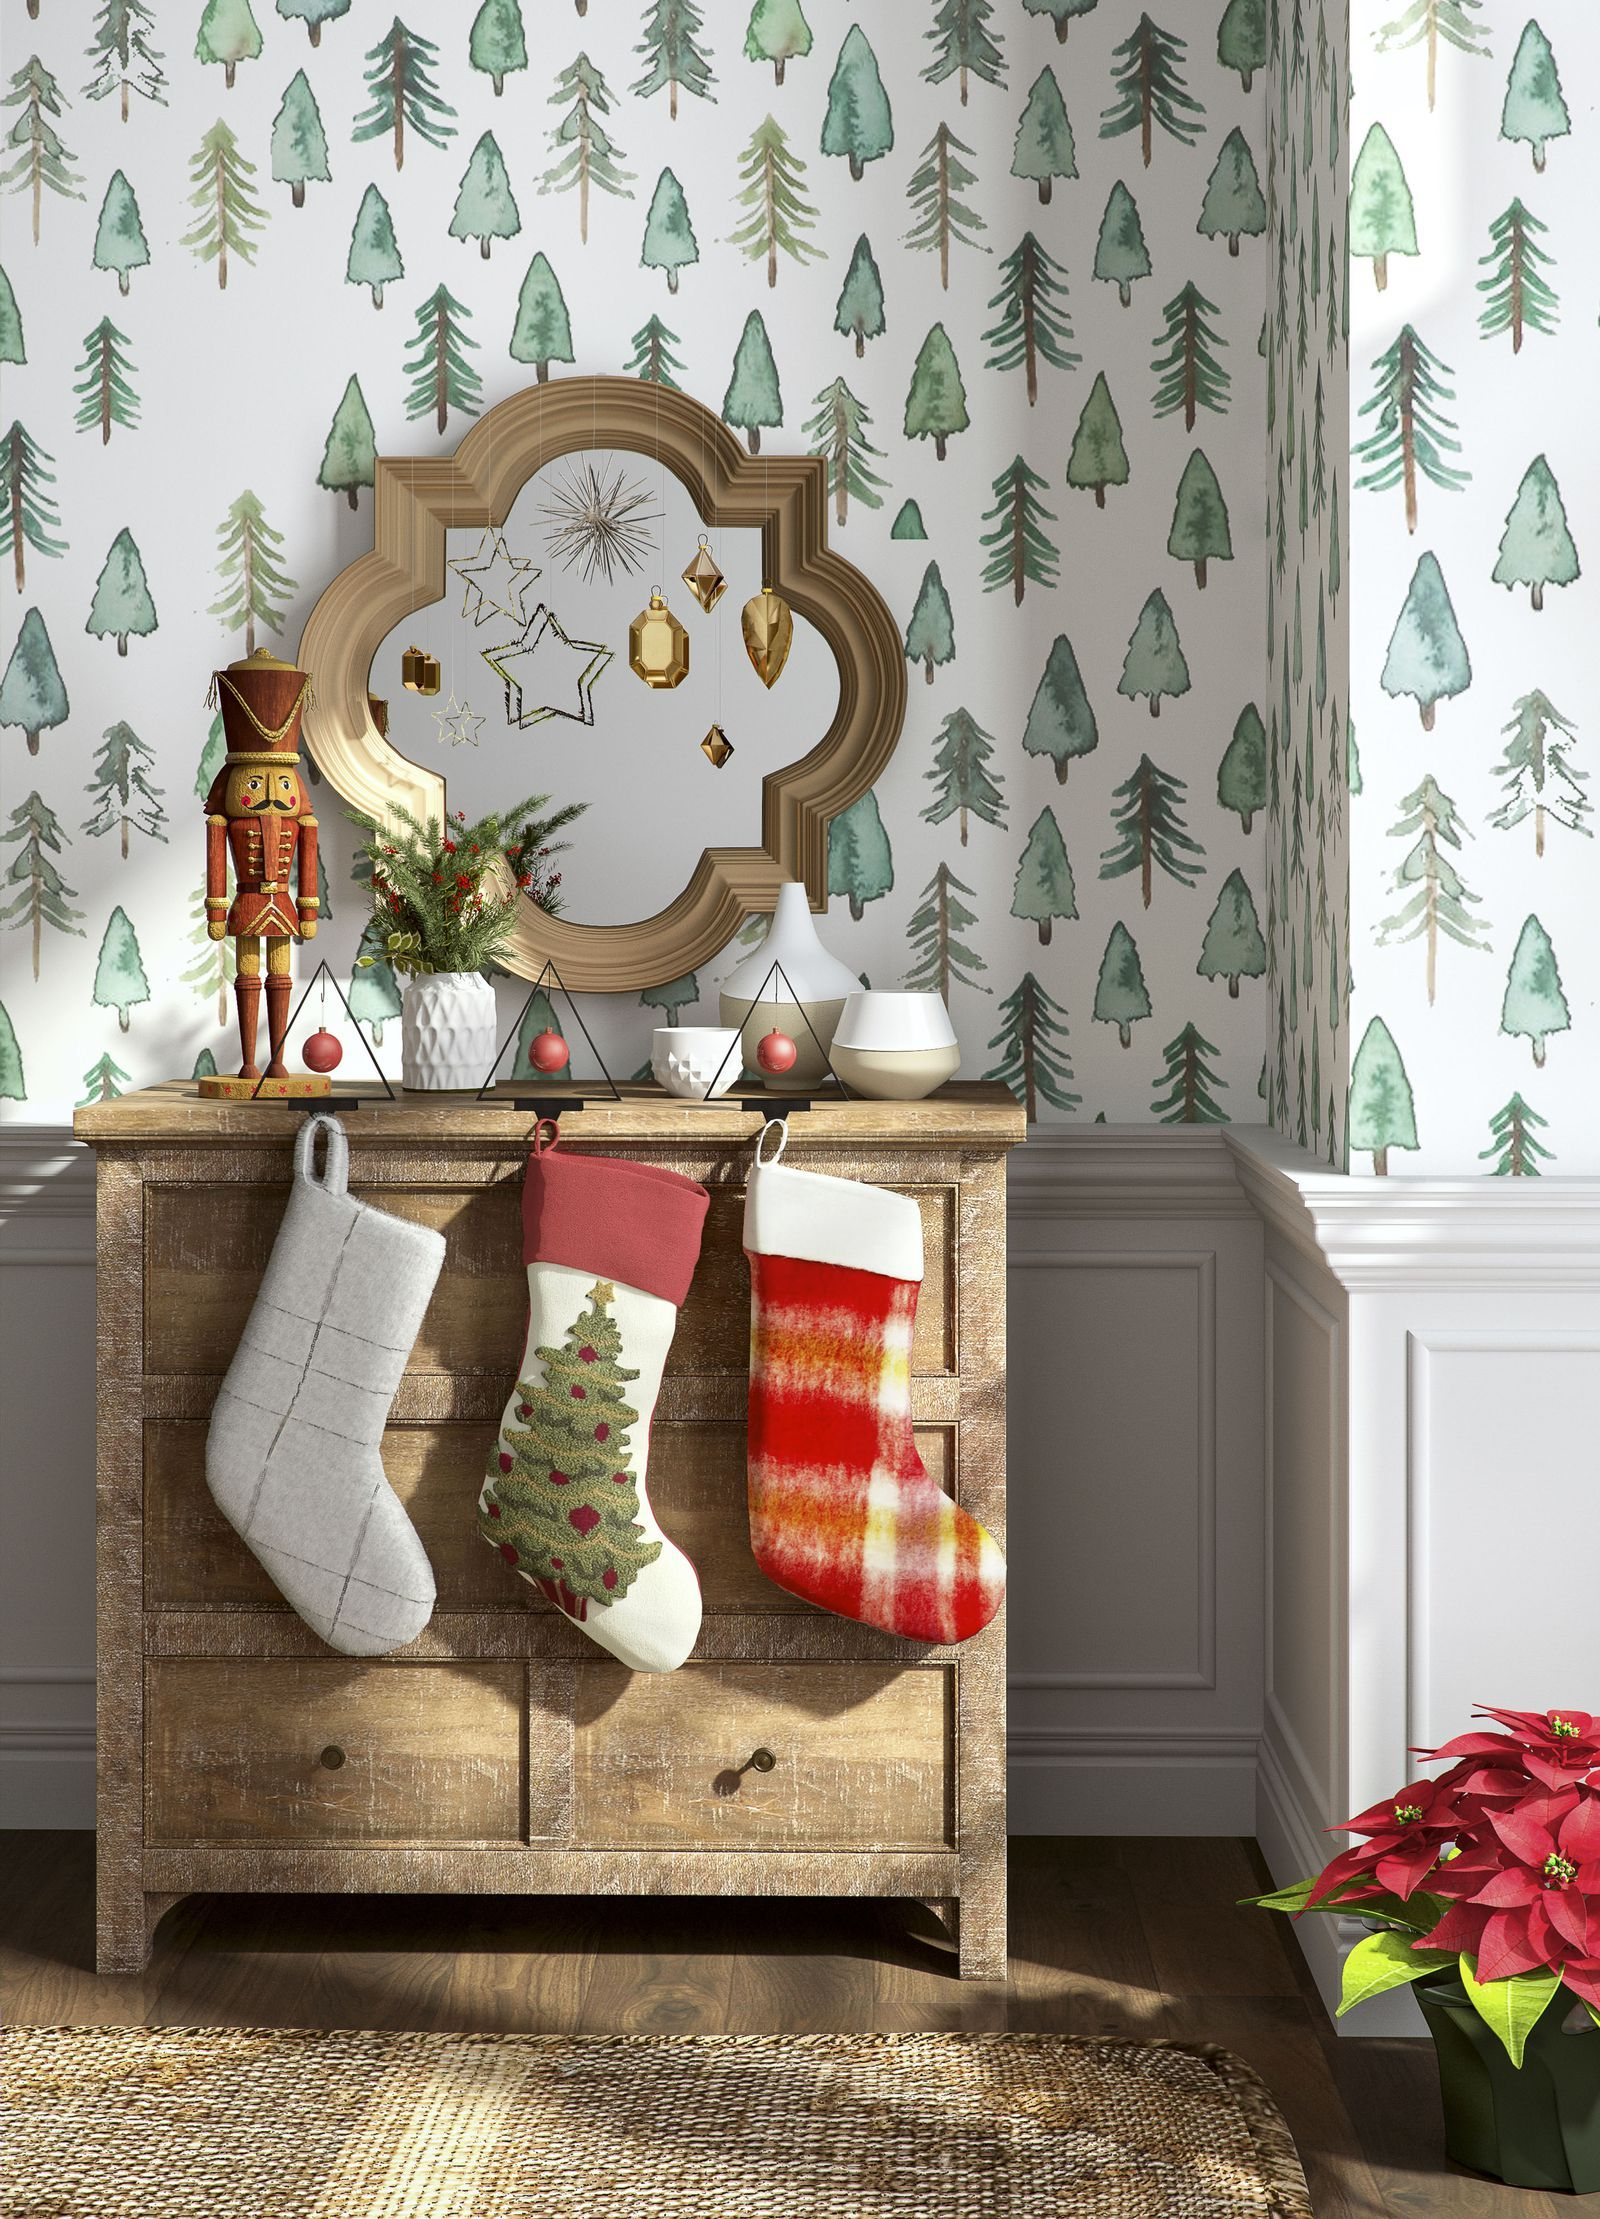 Decorating A Room Online: This Online Decorating Service Is Solving All Our December